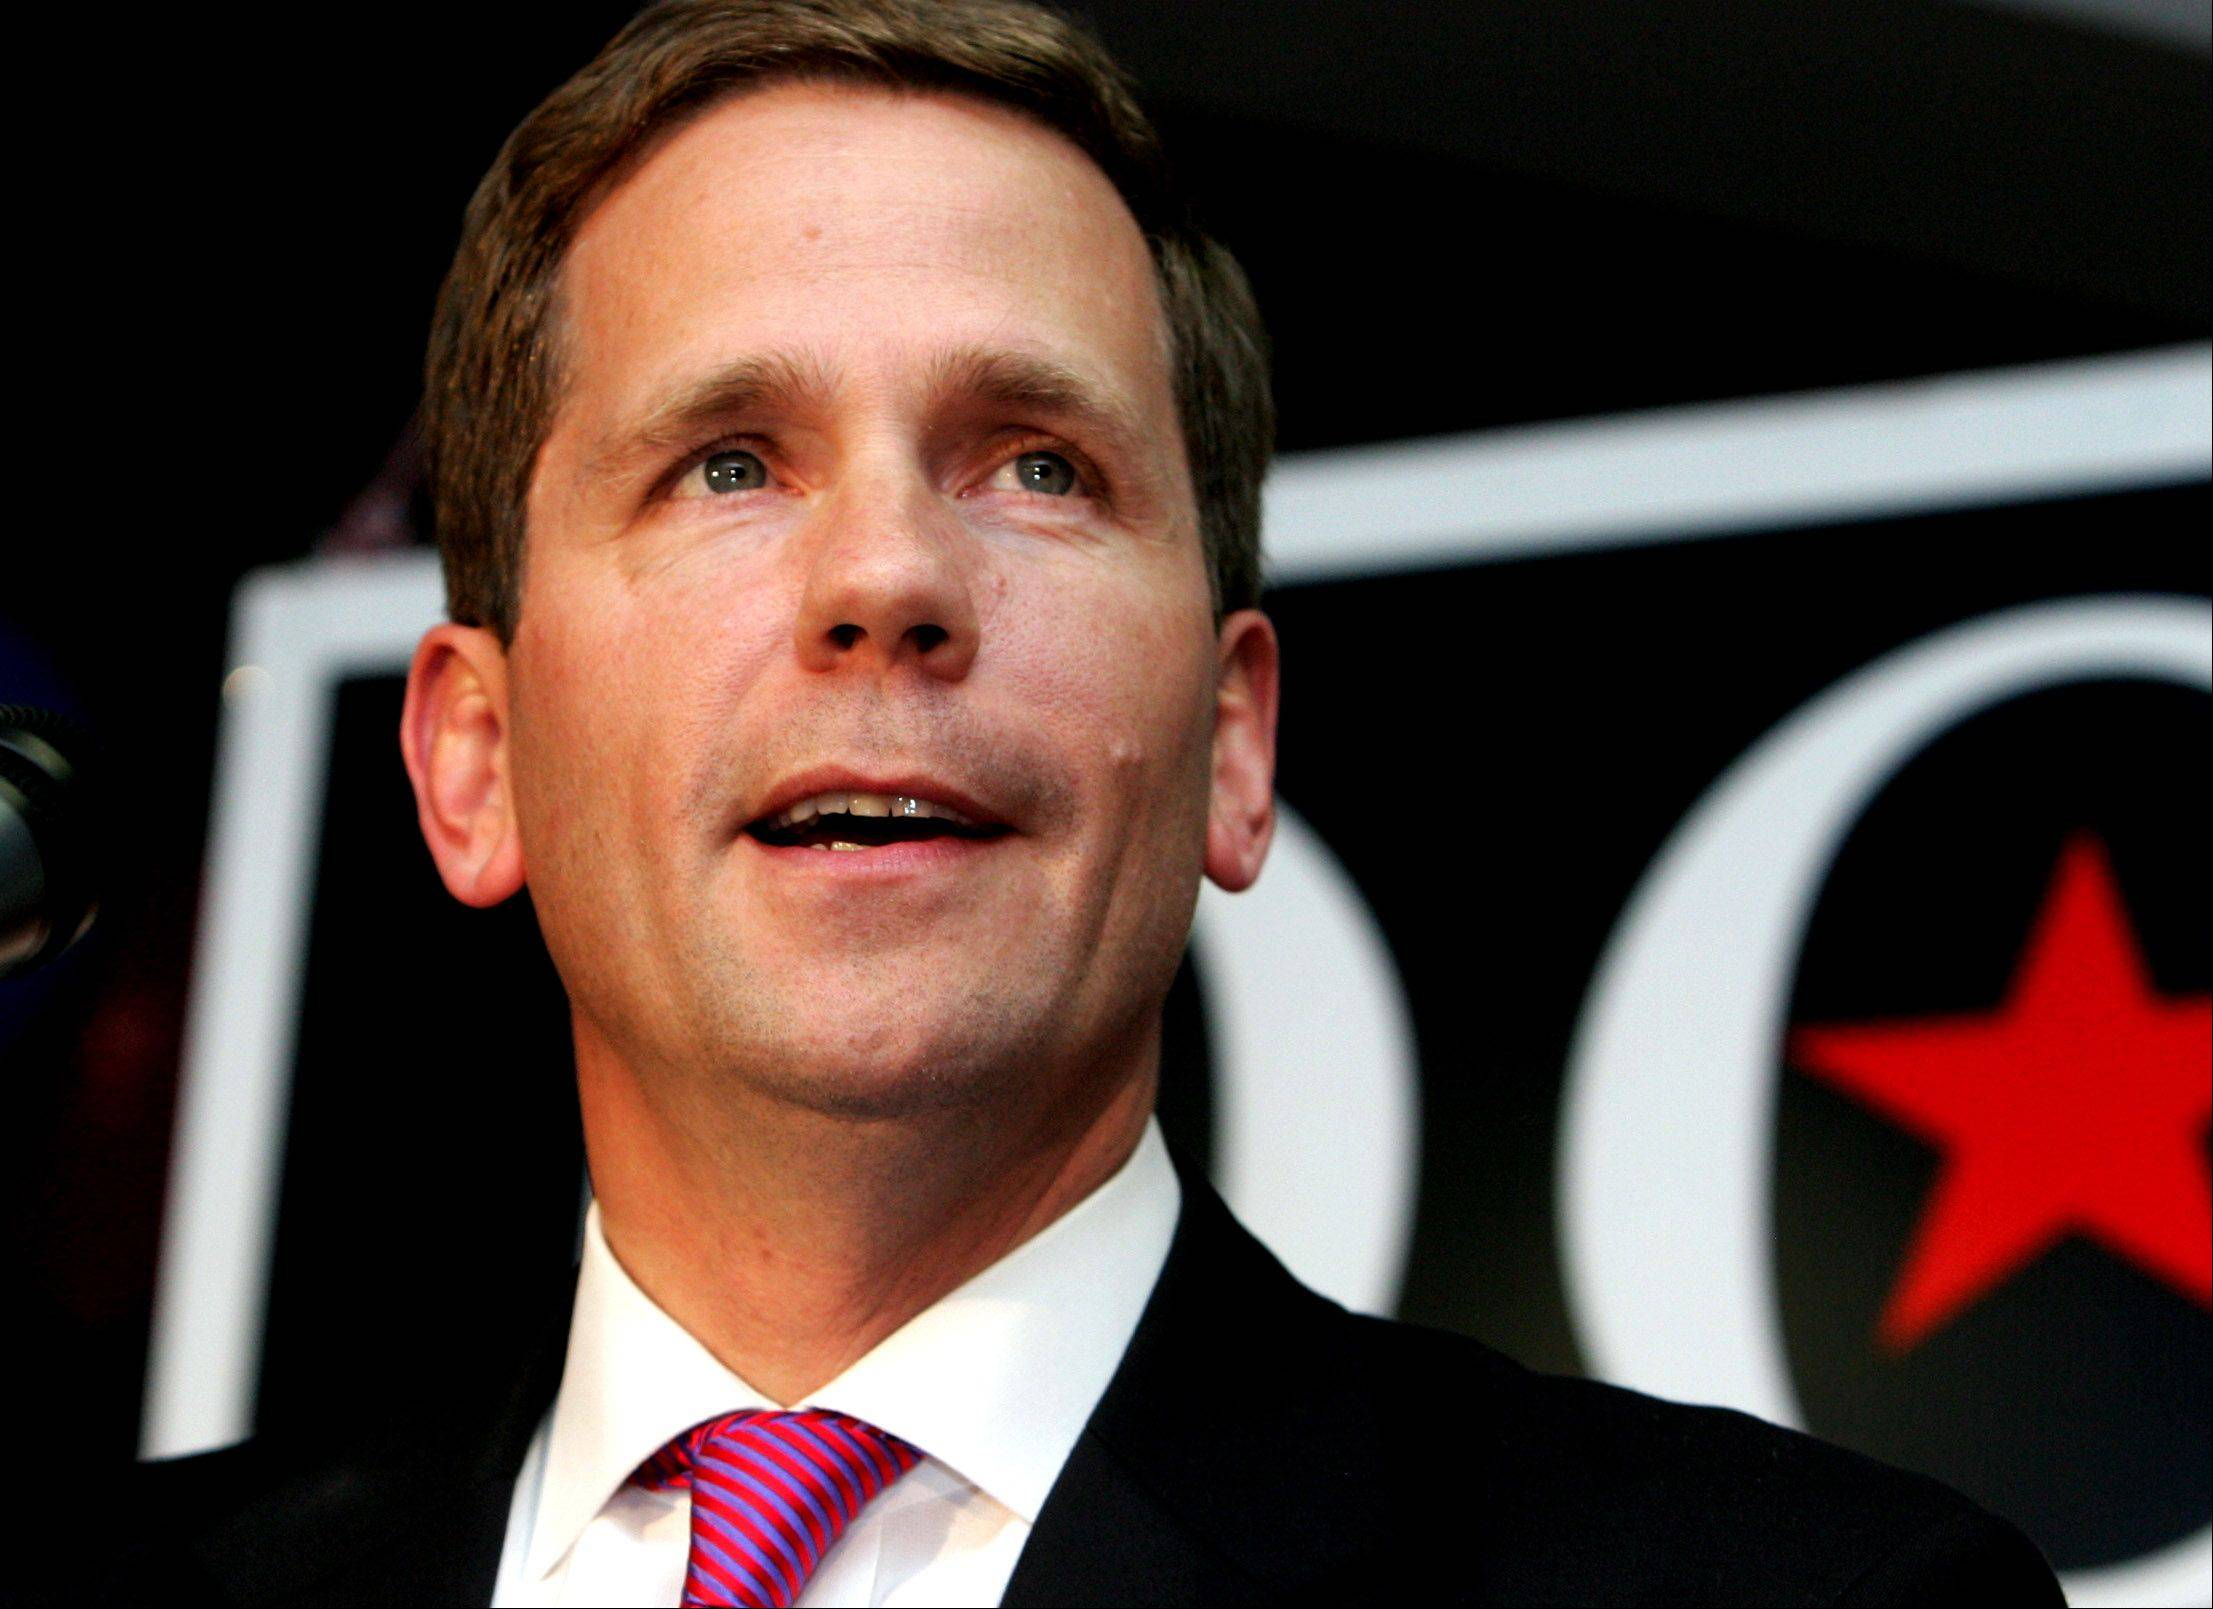 Kerry in Tampa: Dold seeks to redefine himself as independent Republican